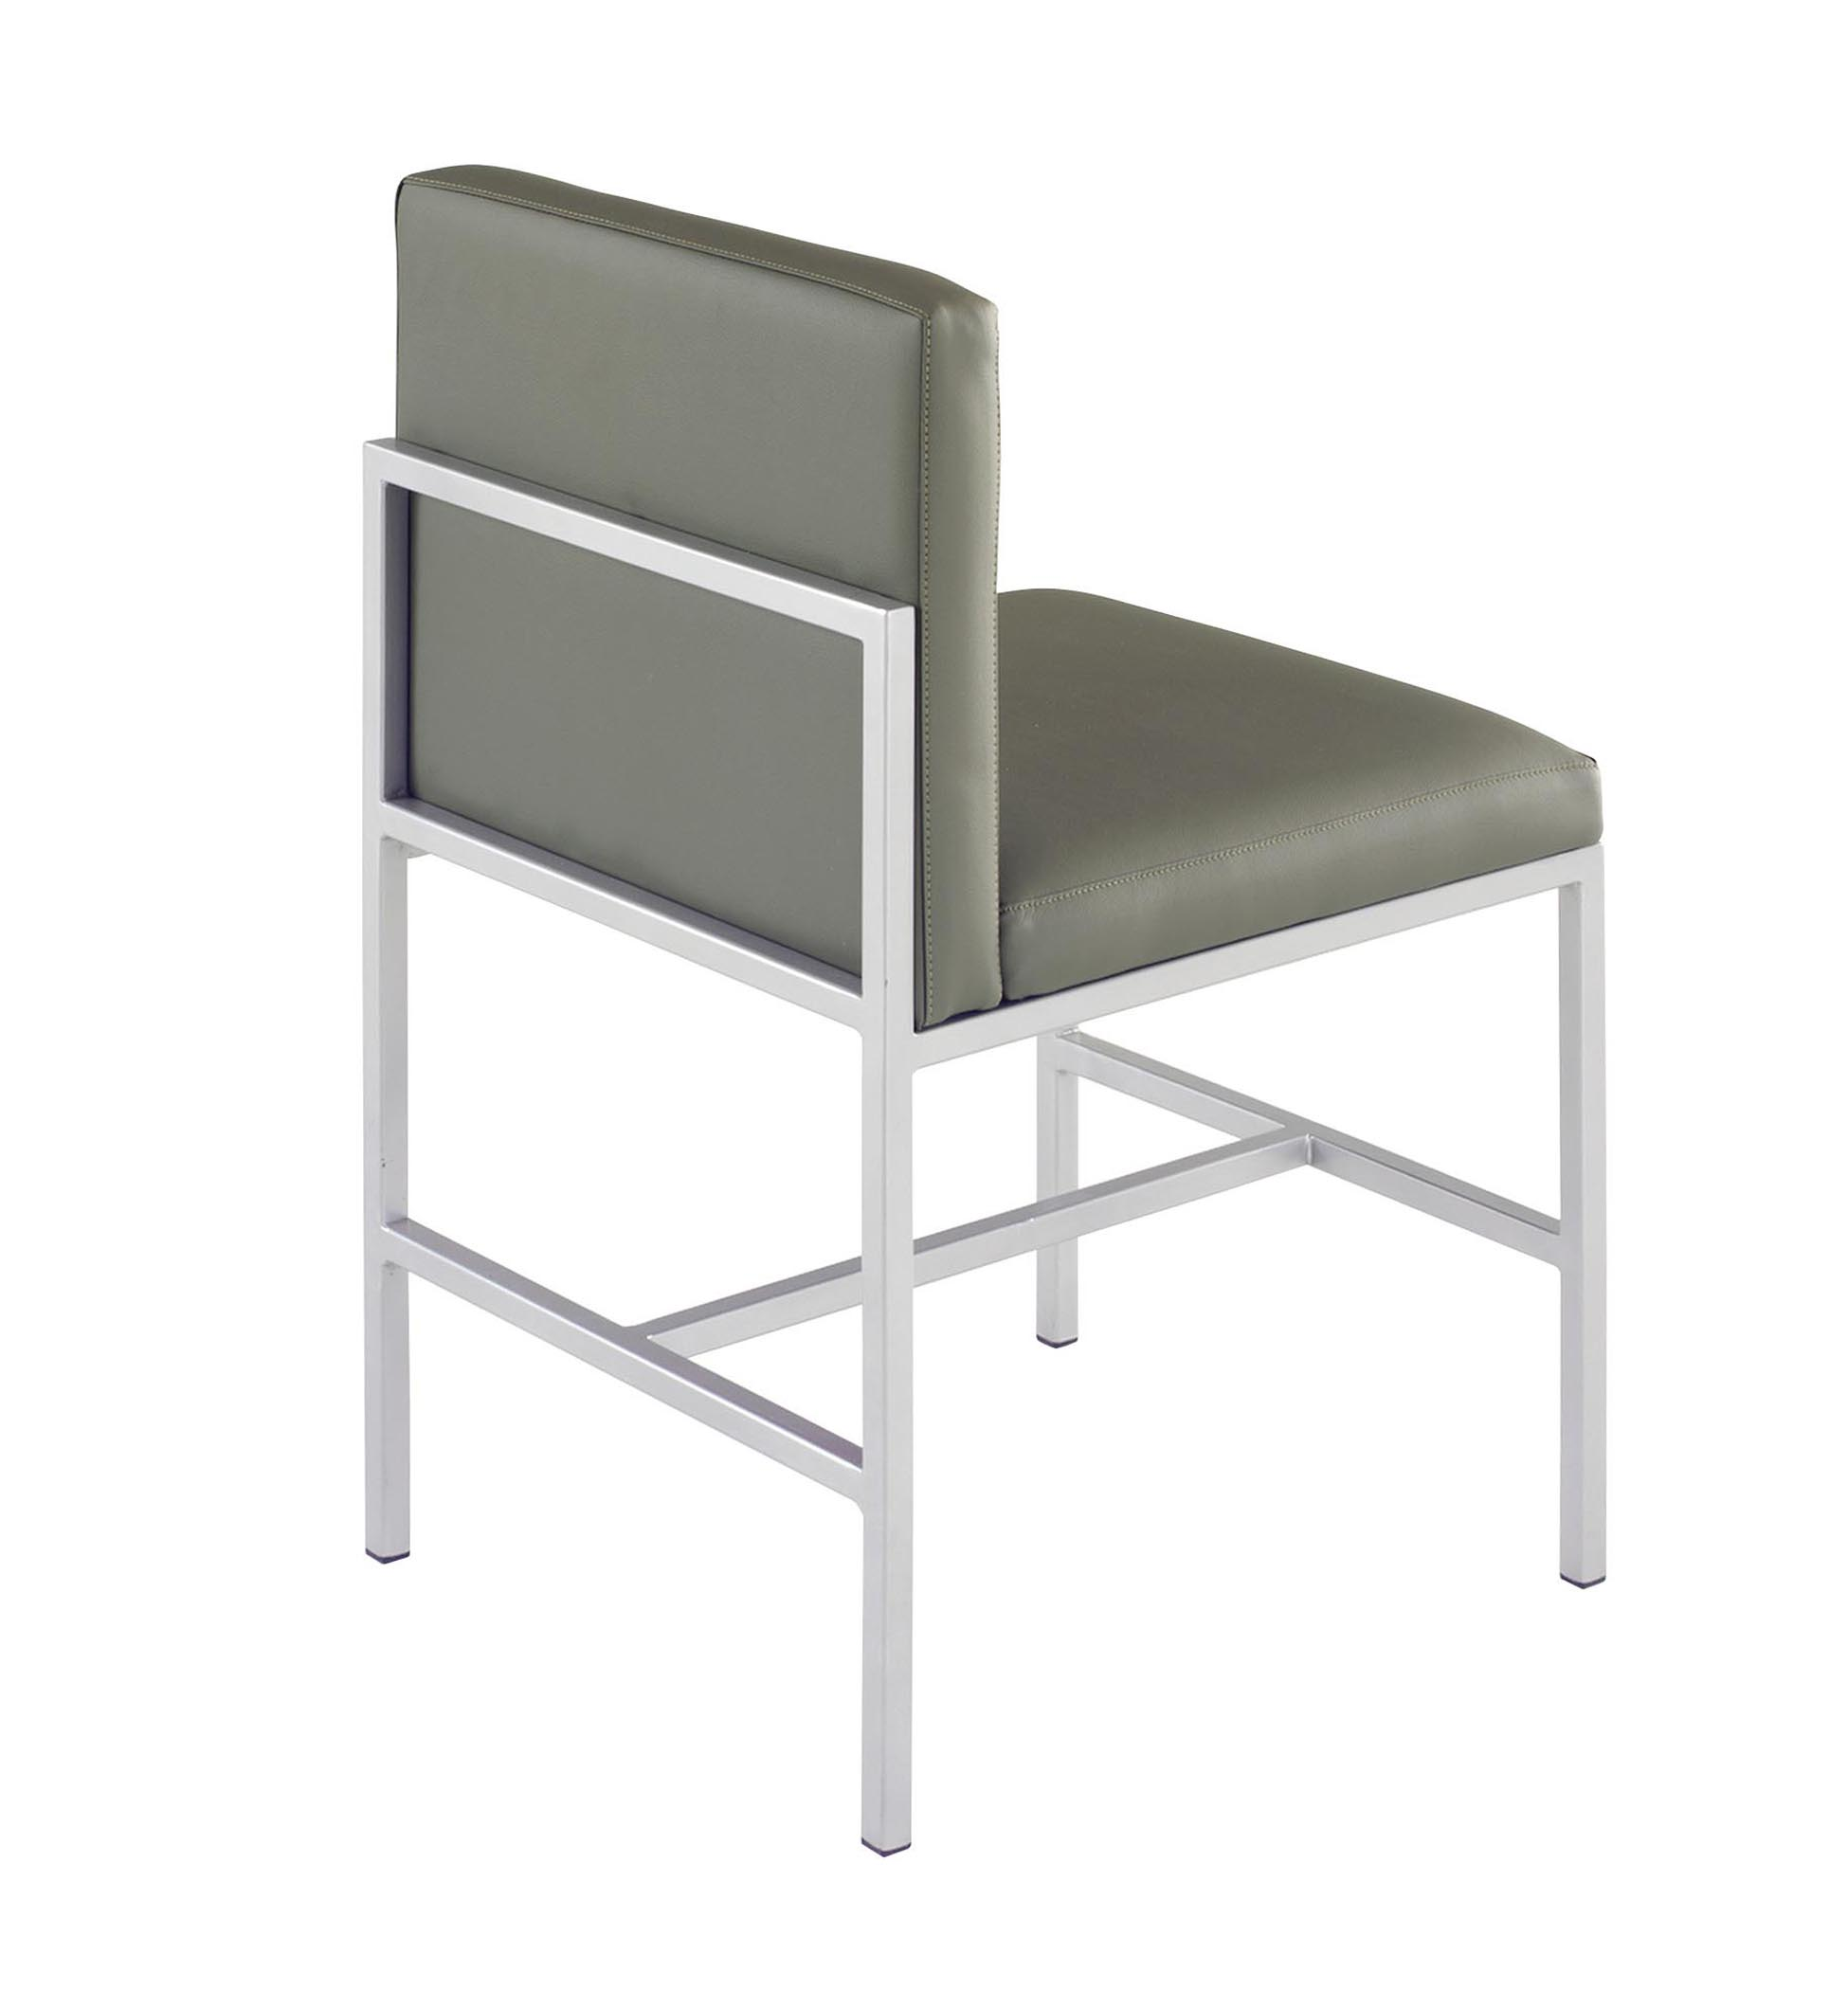 Designer metal chairs - Metal Chair Design Minimalist Aluminum Metal Chair Minimalist Alumunium Chair Series Comida Metal Chair